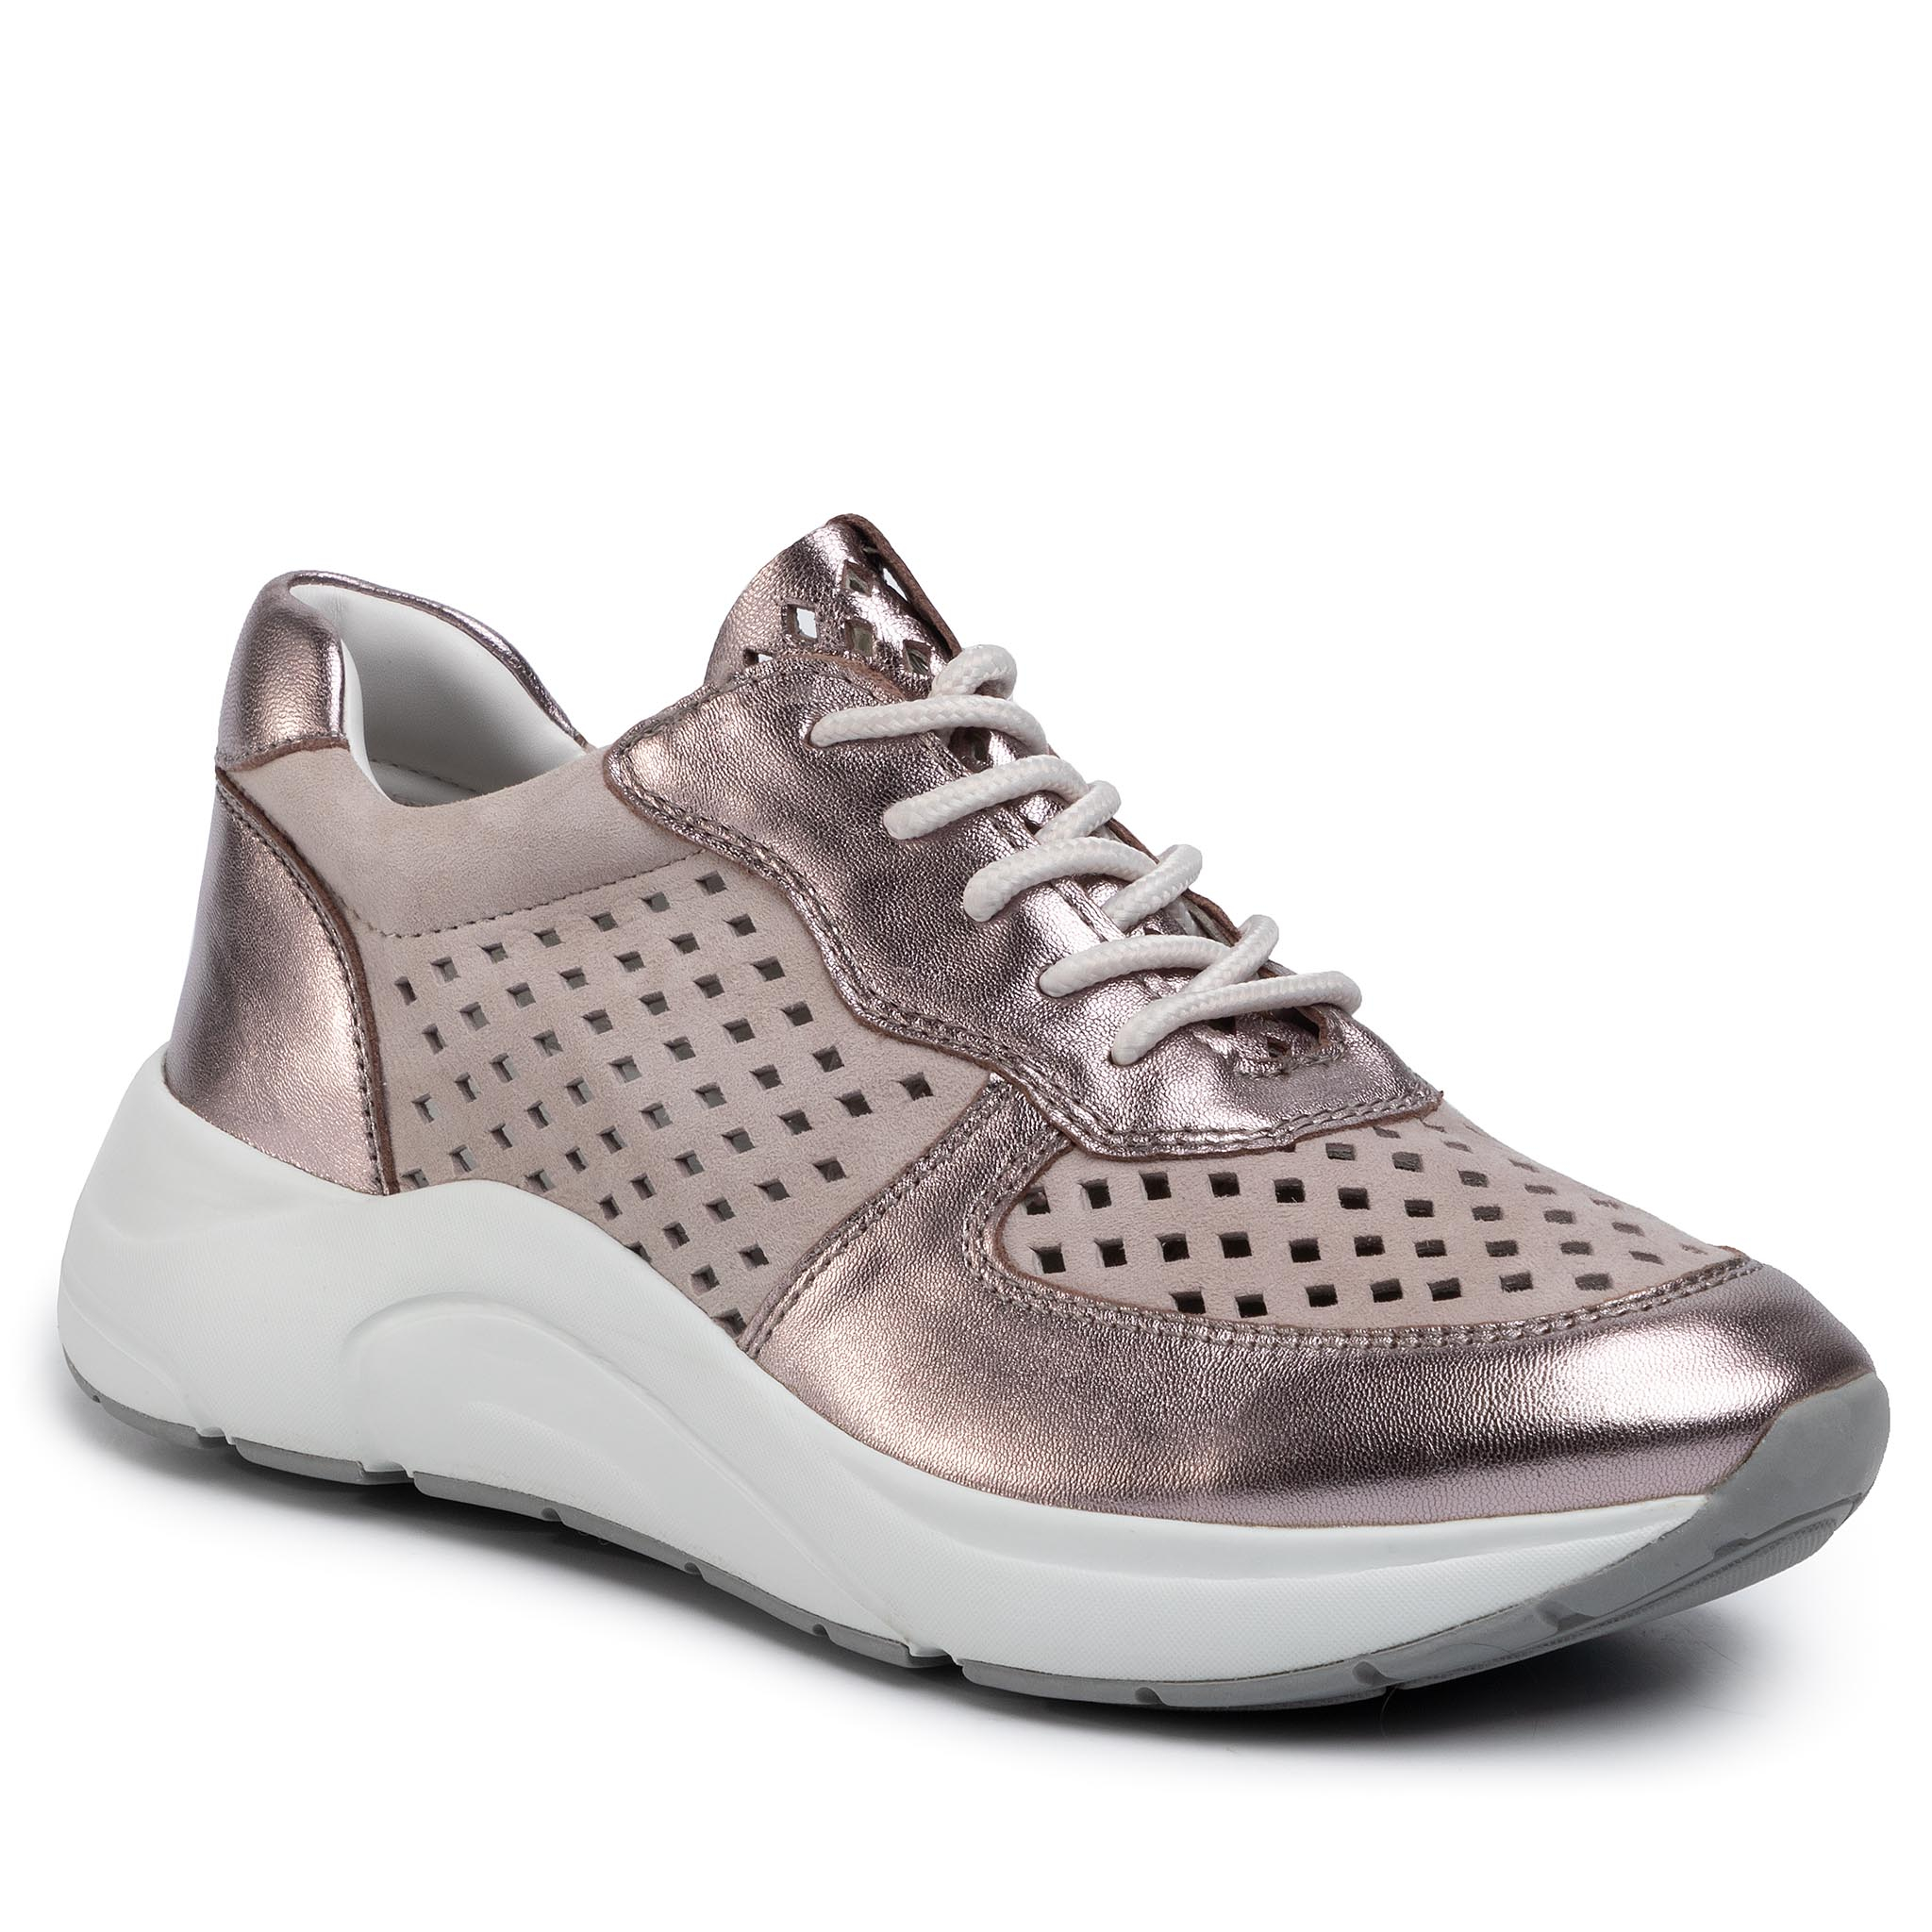 Sneakers CAPRICE - 9-23500-24 Soft Pink Comb 594